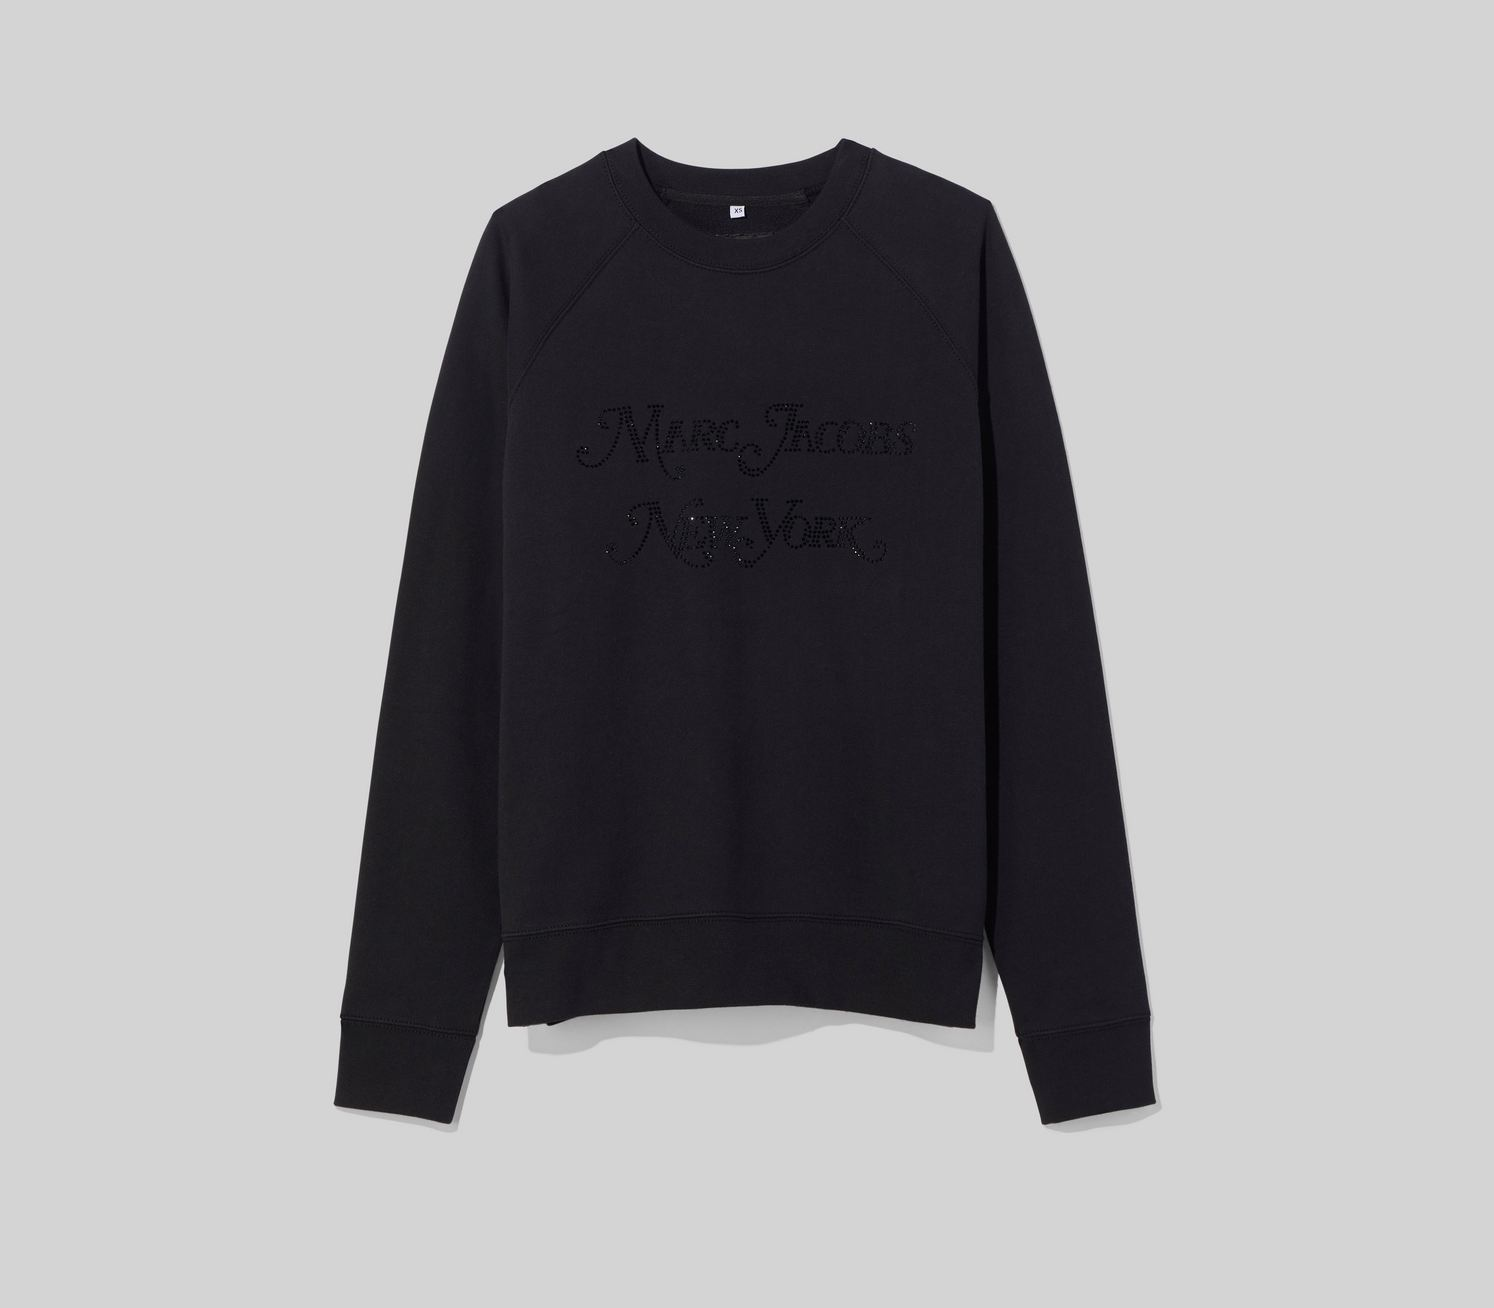 The sweater by Marc Jacobs